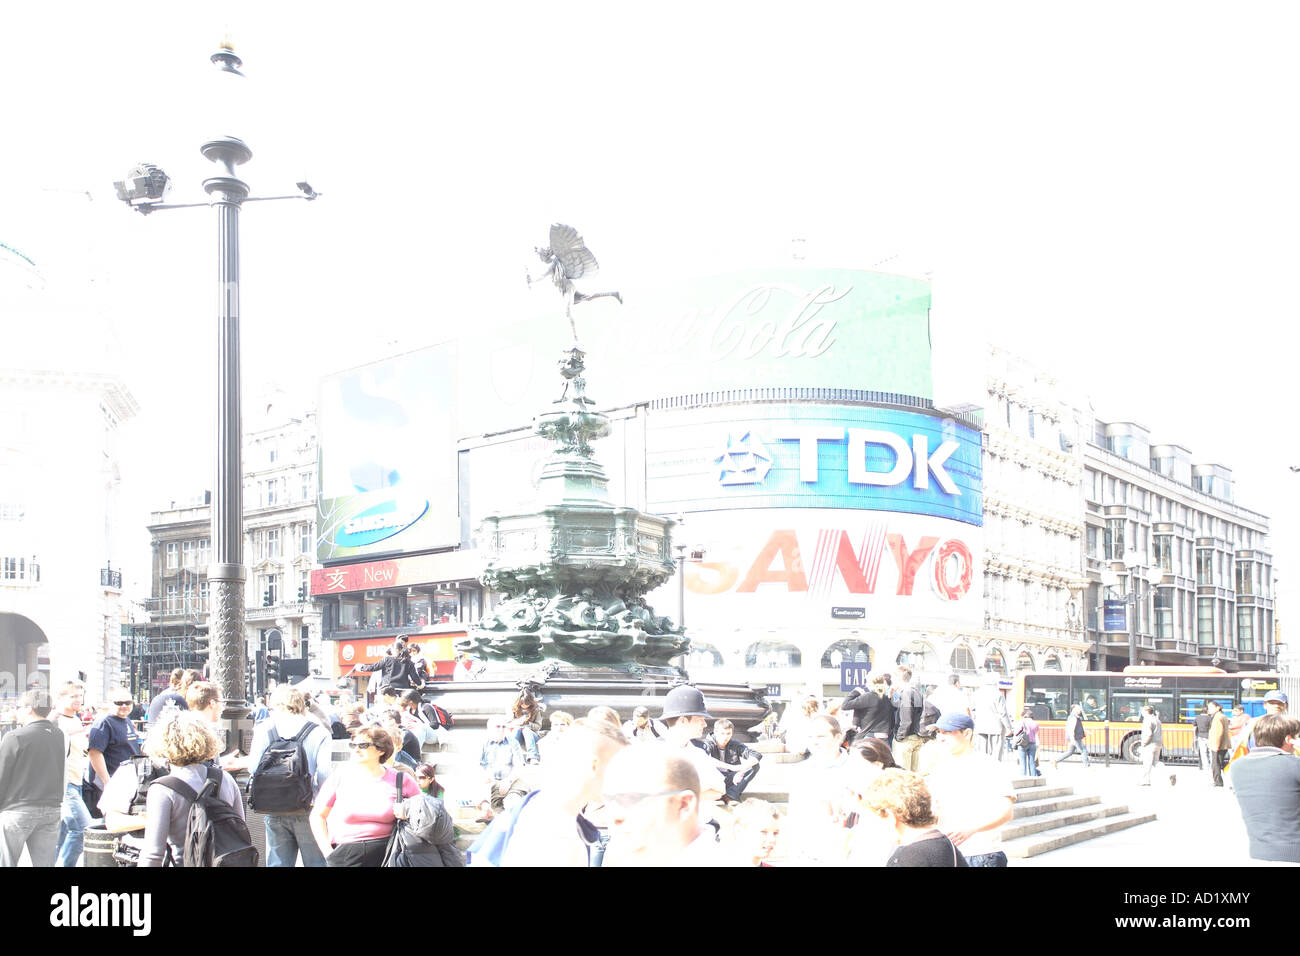 Piccadilly Circus in stylised overexposure. London, England, UK Stock Photo